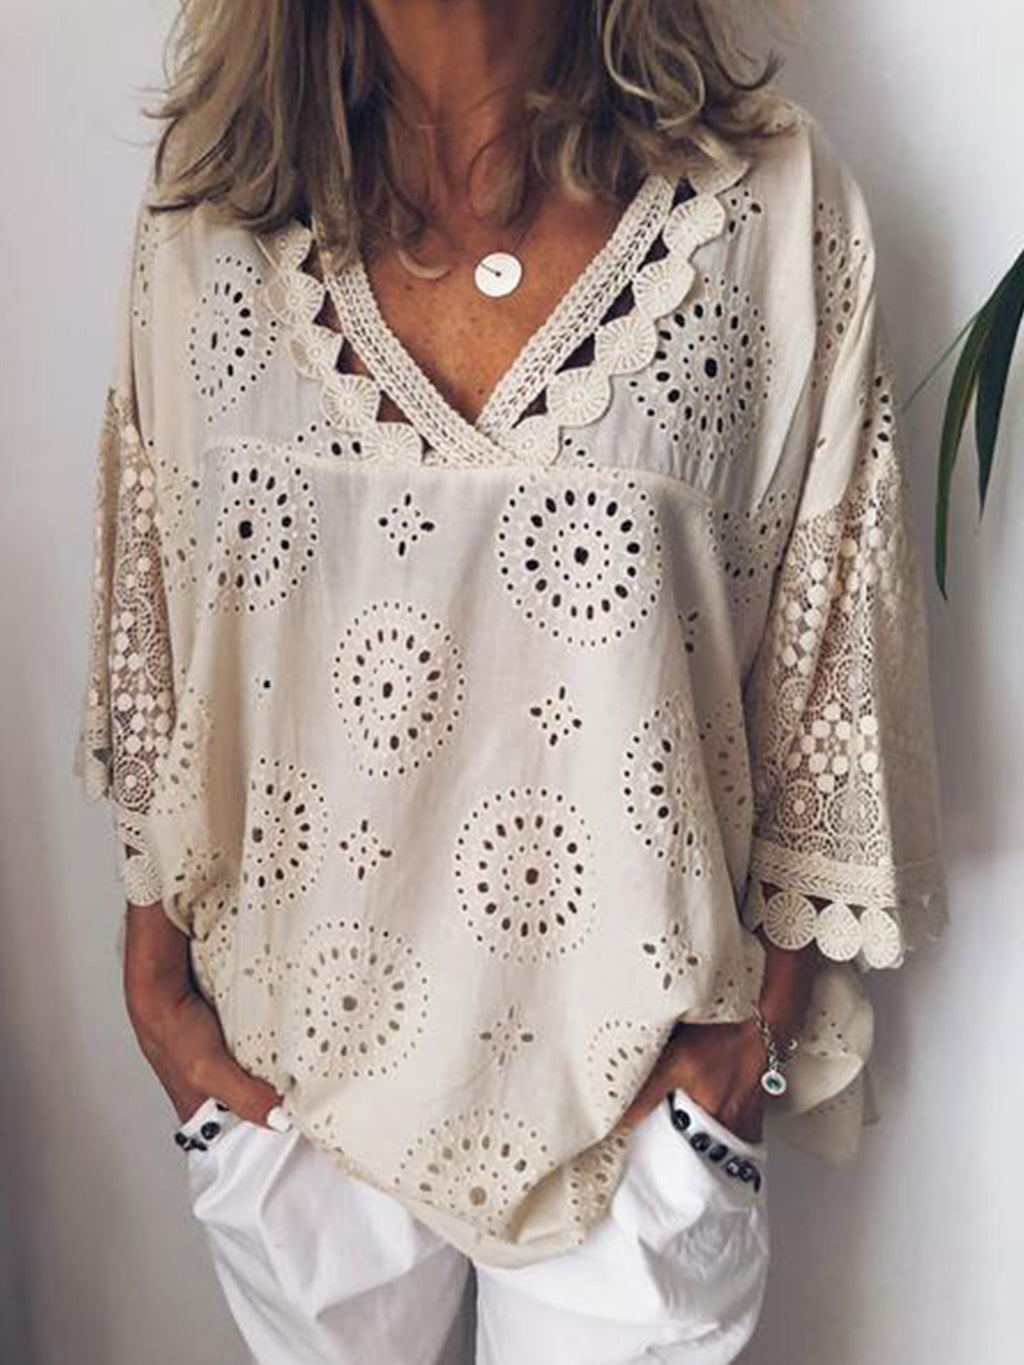 Women Cutout Blouse T Shirt Tunic Top